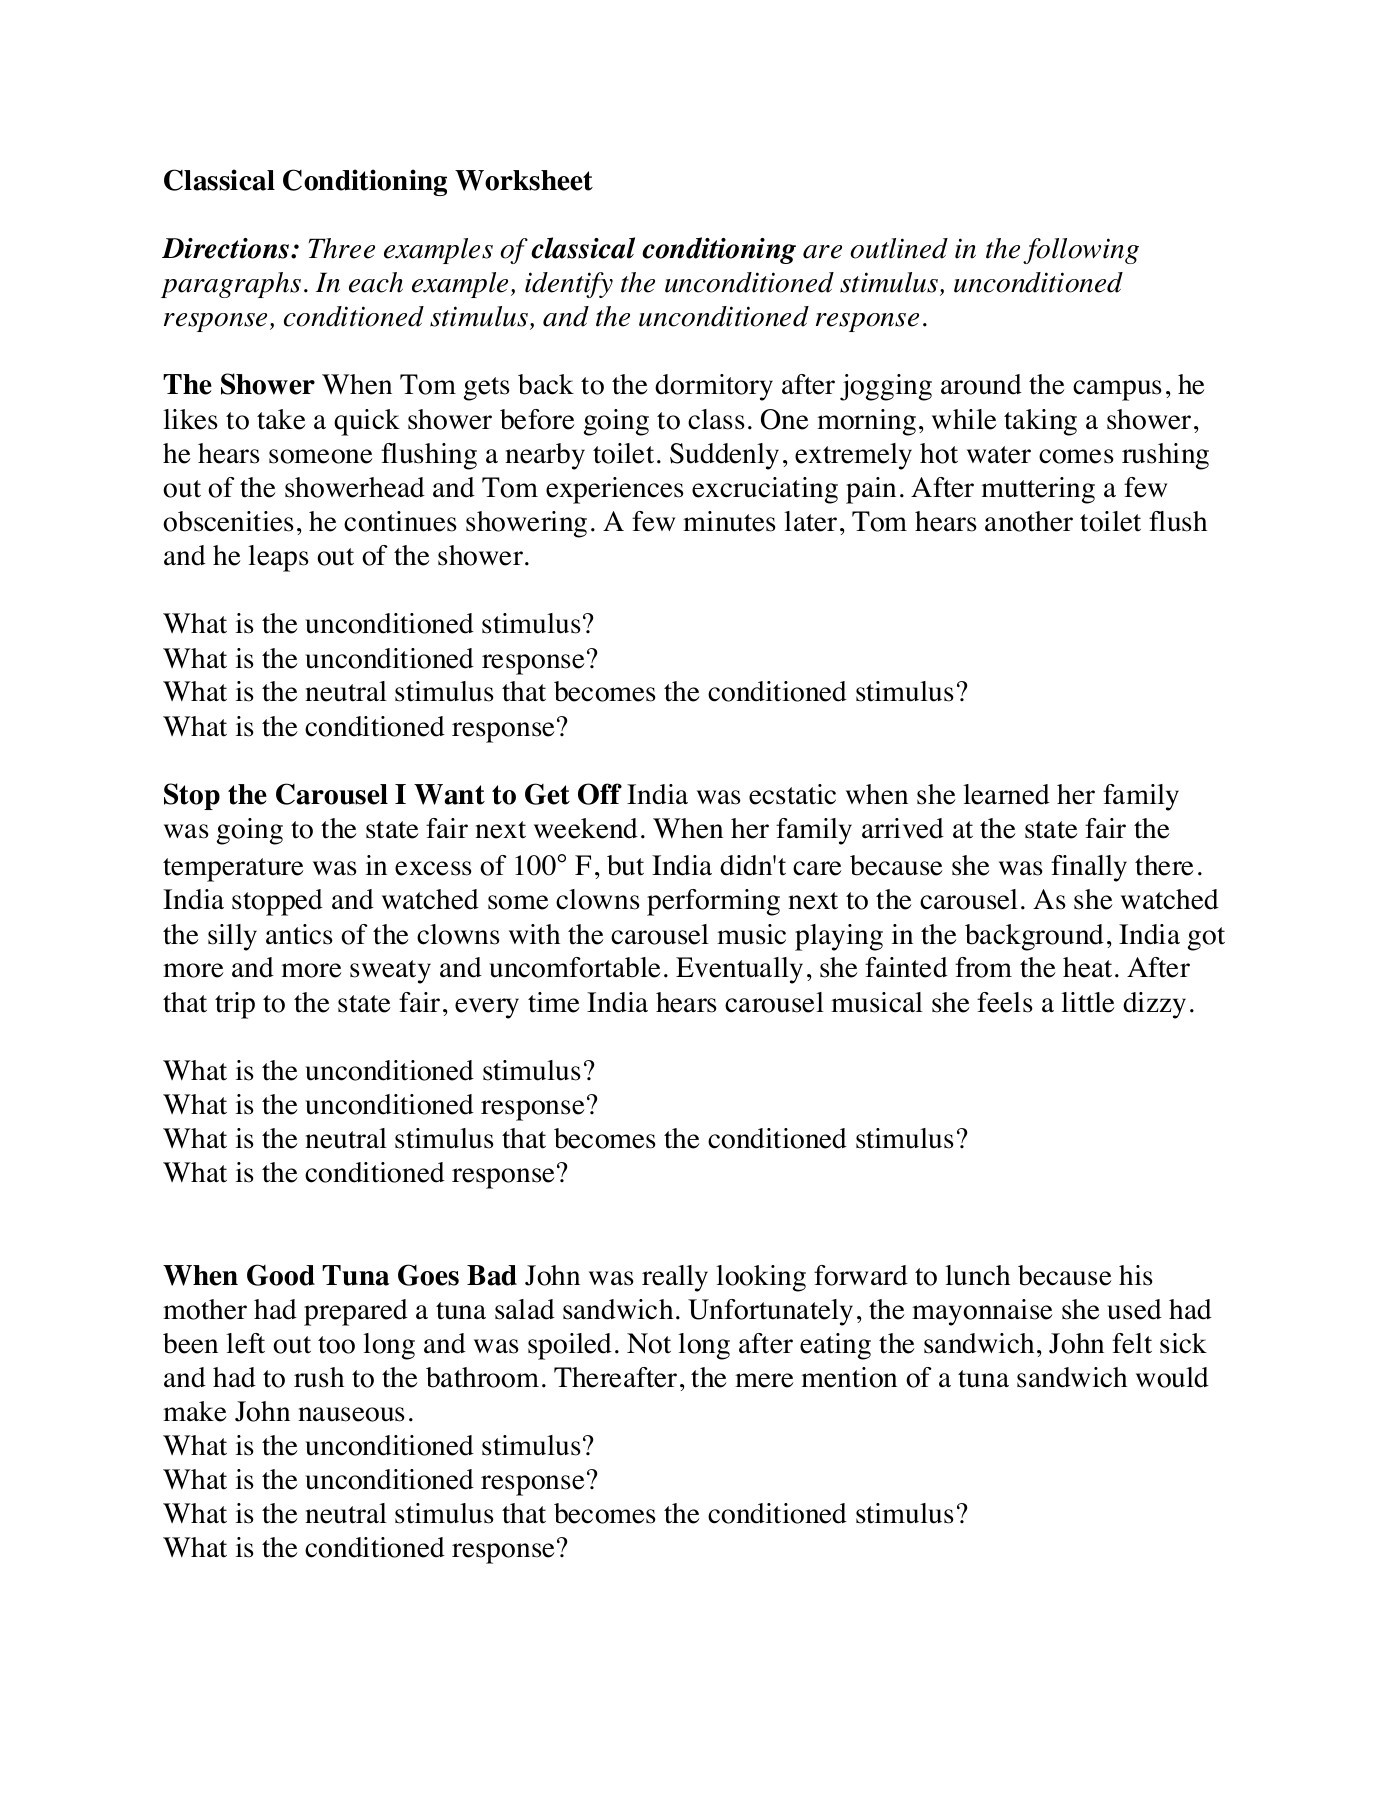 Printables Of Classical Conditioning Worksheet Answers